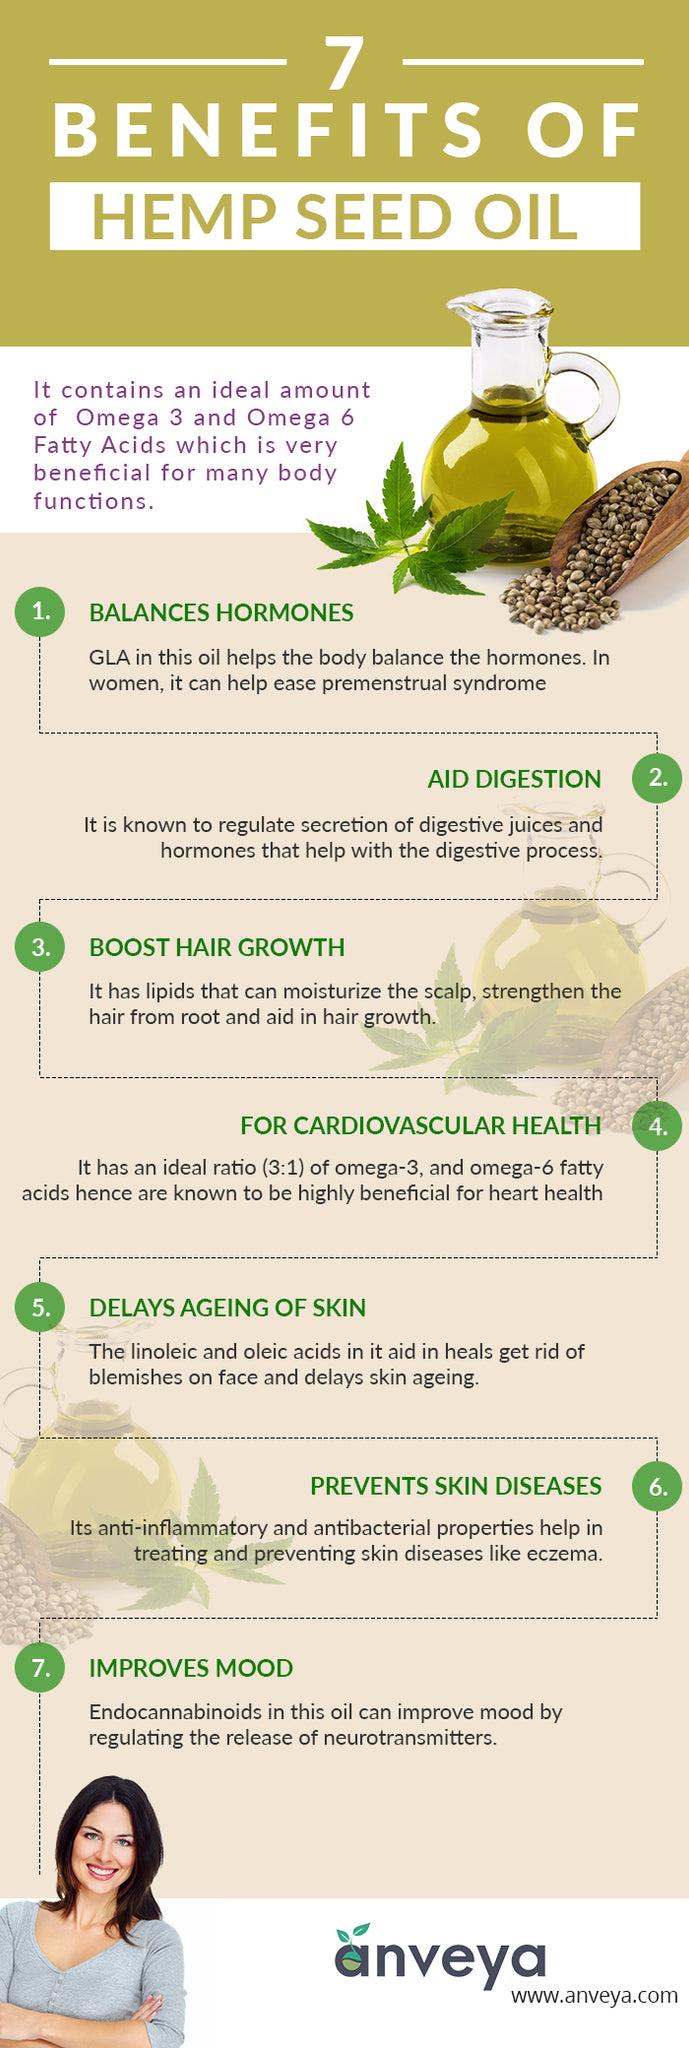 7 Benefits Of Hemp Seed Oil Infographic Anveya